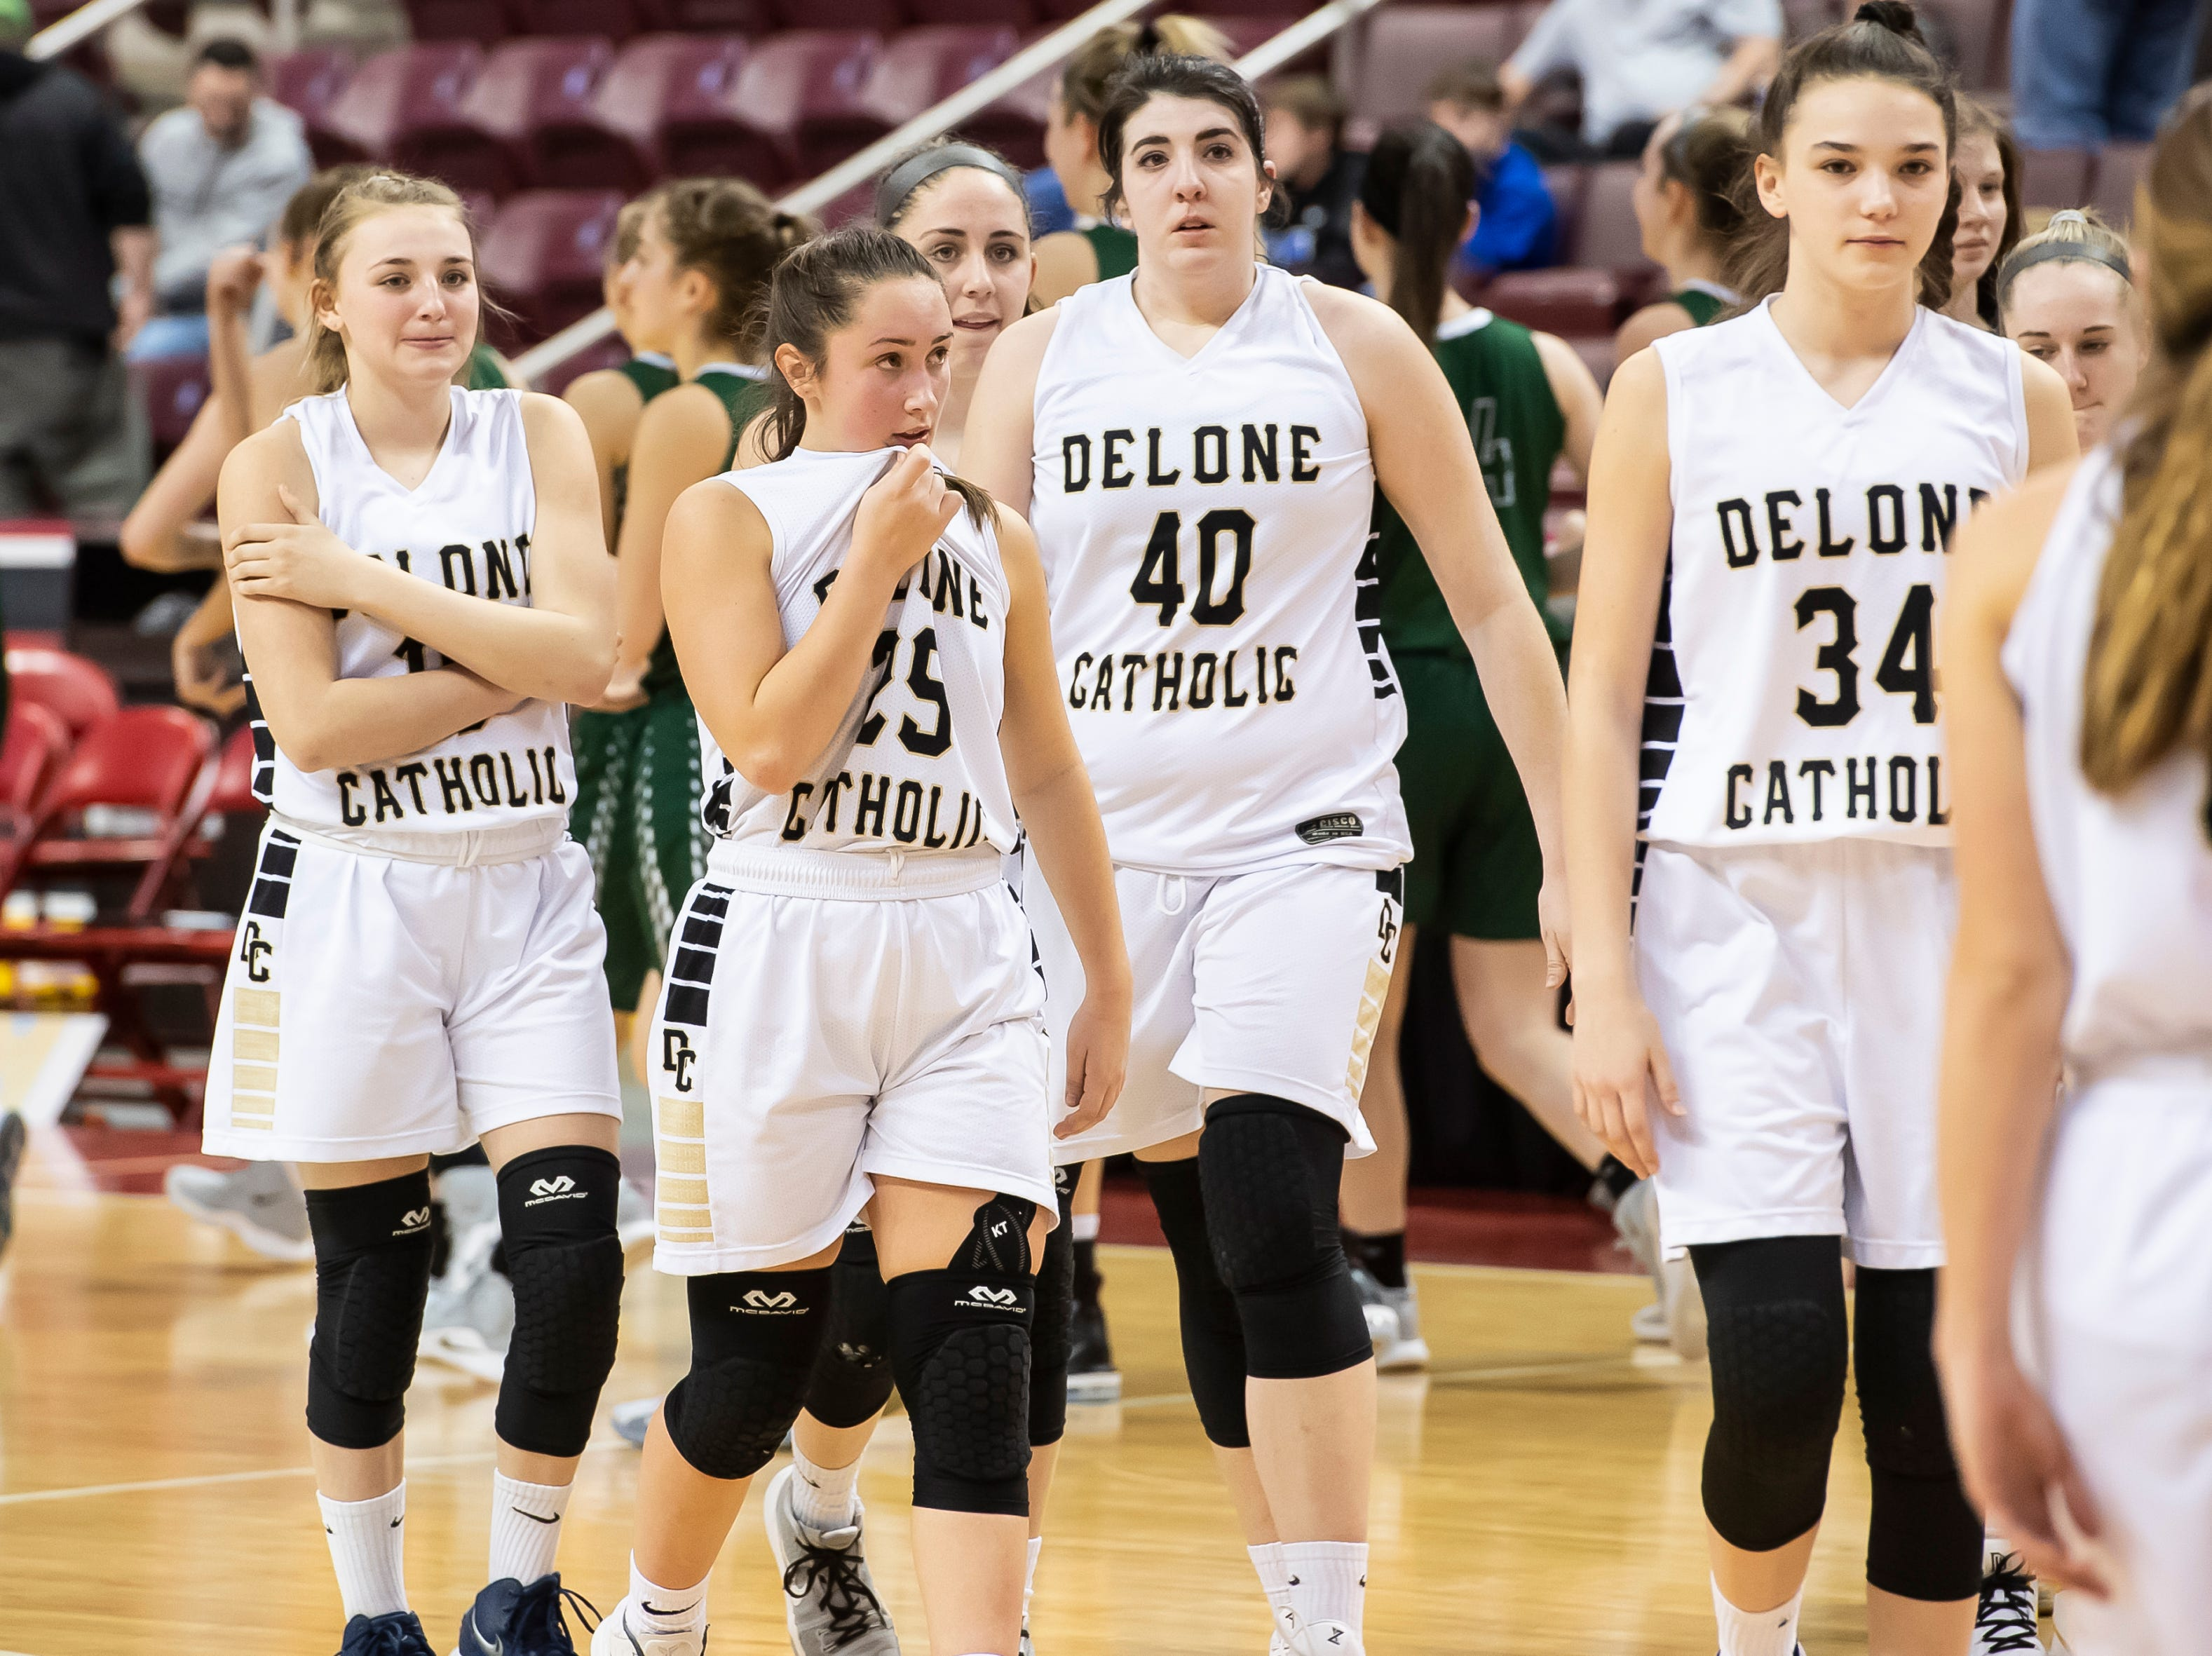 Delone Catholic players walk on the court after falling to Trinity in the District 3 3A girls championship game against Trinity at the Giant Center in Hershey Wednesday, Feb. 27, 2019. The Squirettes fell 44-33.